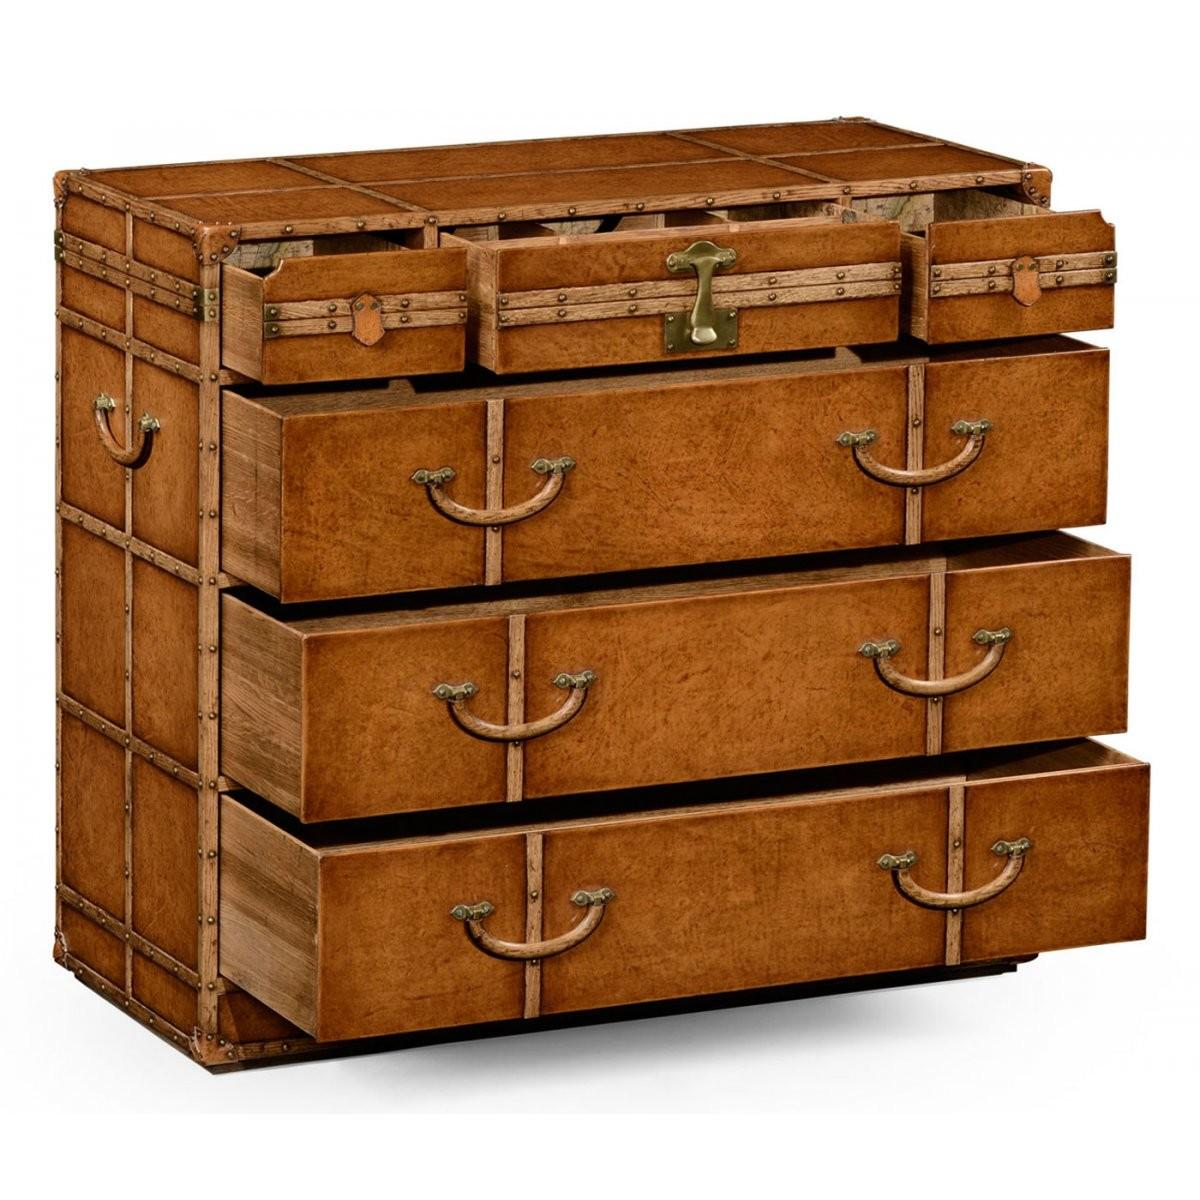 Travel Trunk Leather Chest Drawers Swanky Interiors